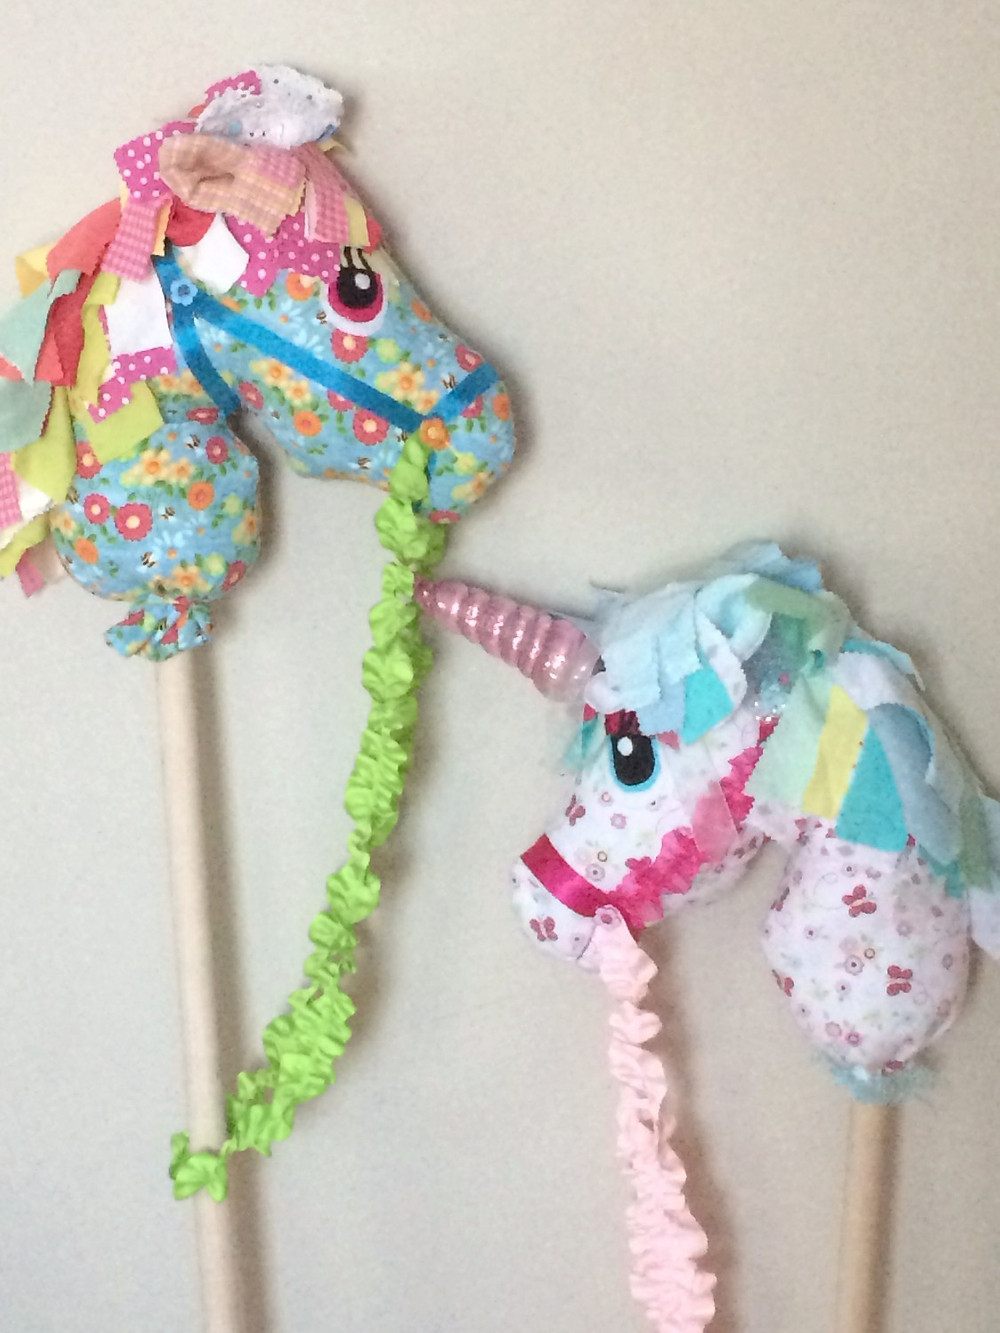 Hobby horse and Unicorn